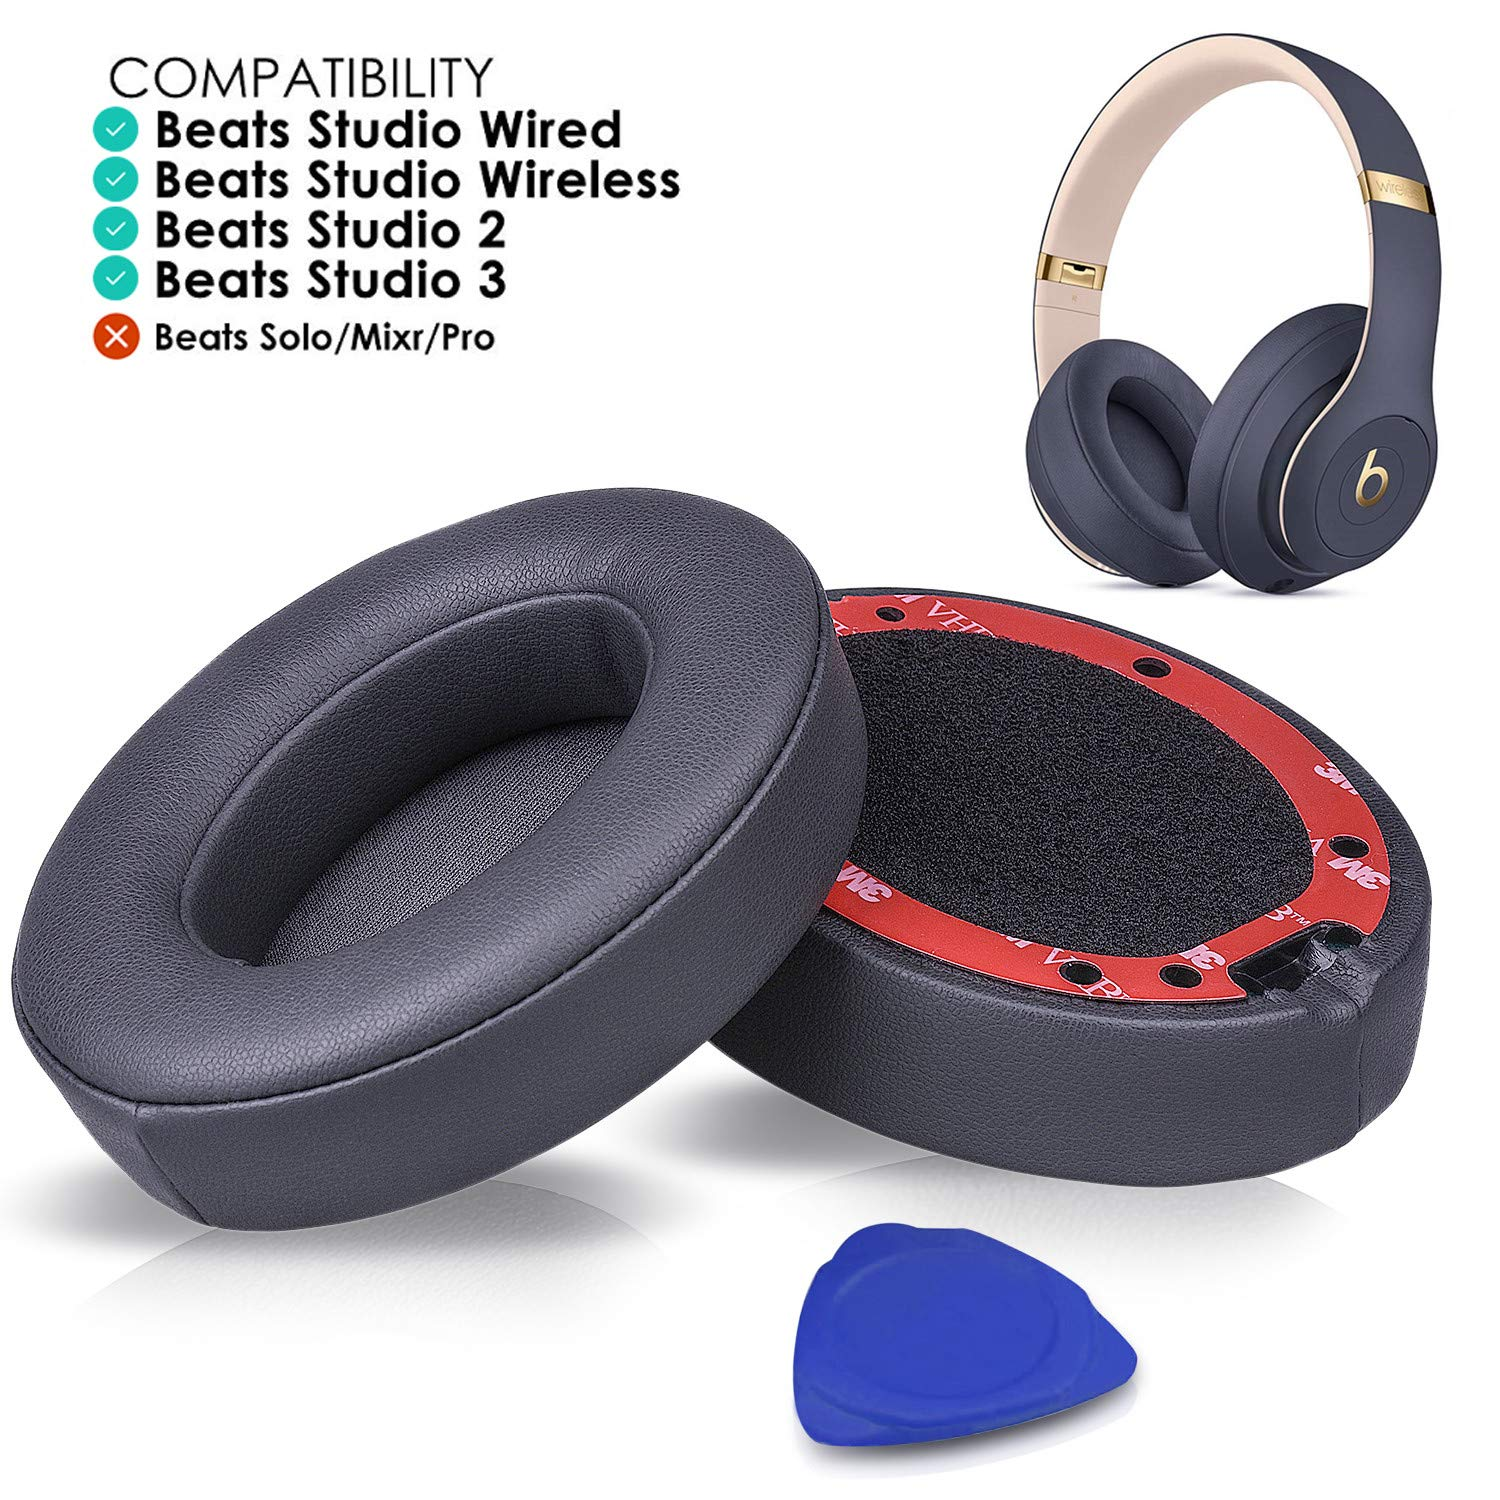 Almohadillas Auriculares Beats Studio 2.0/3 Wired Gris (xsr)